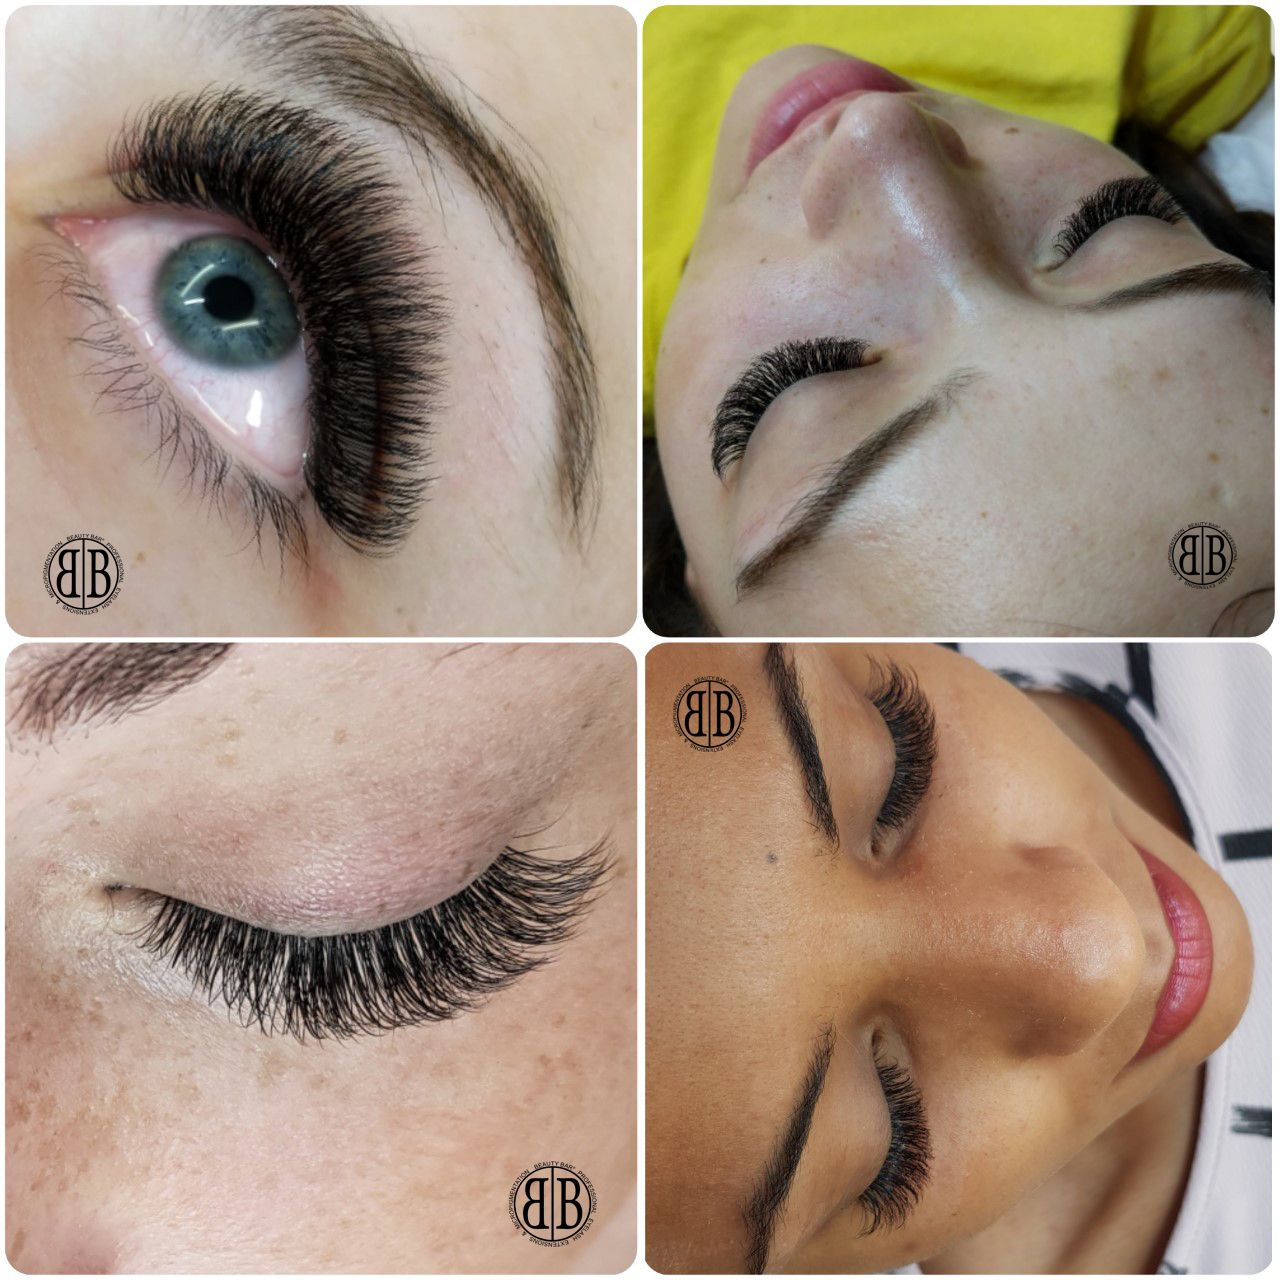 With individual eyelash extensions you don't have to worry